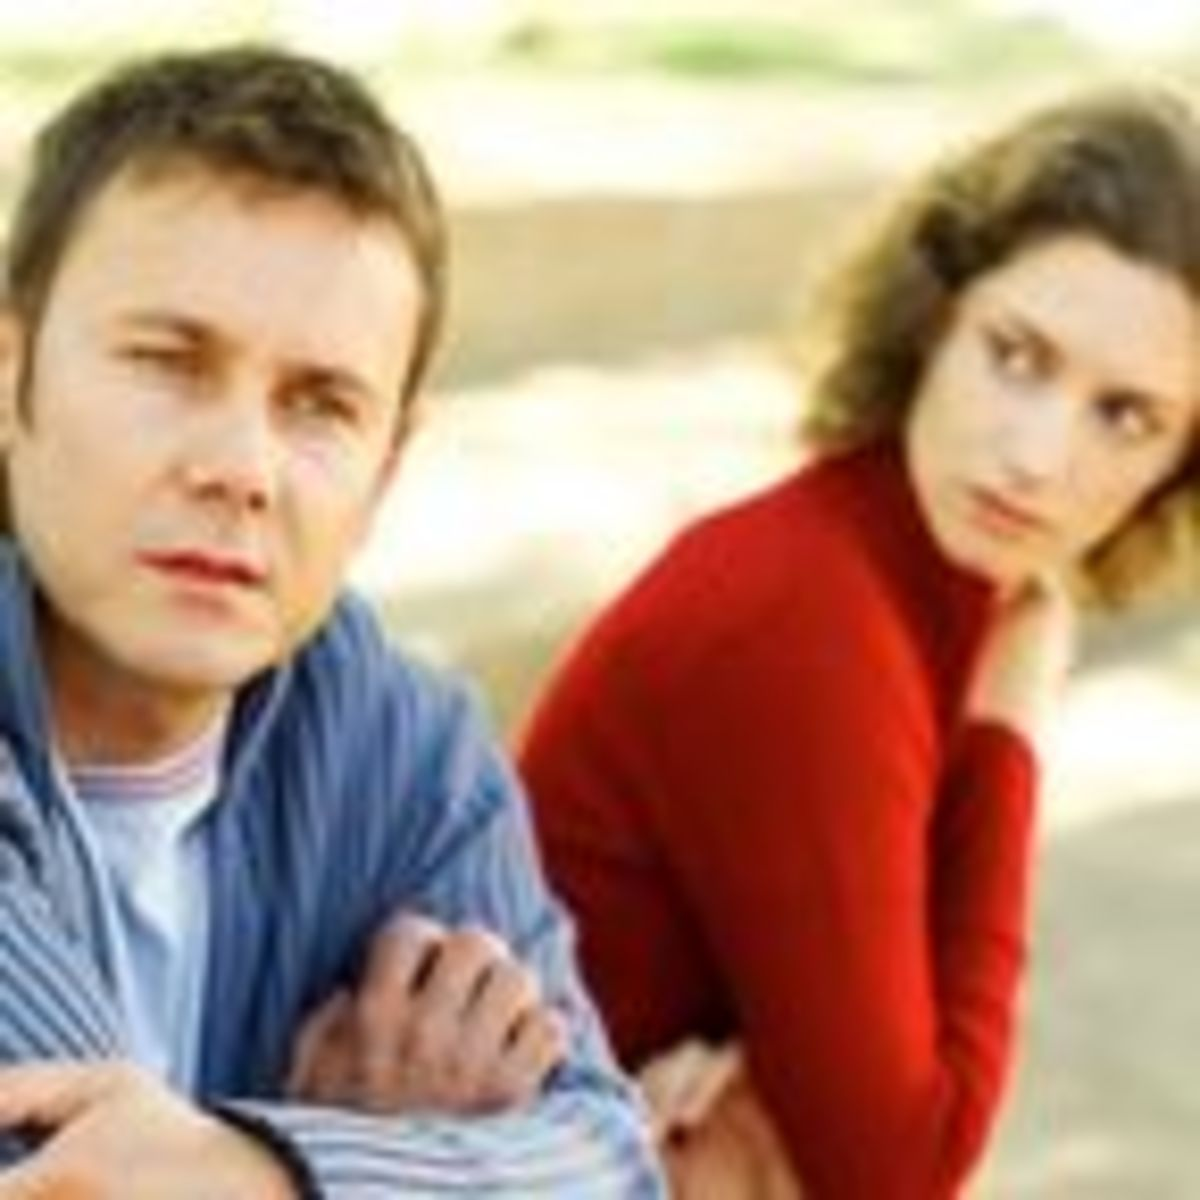 How to not be clingy when dating turns